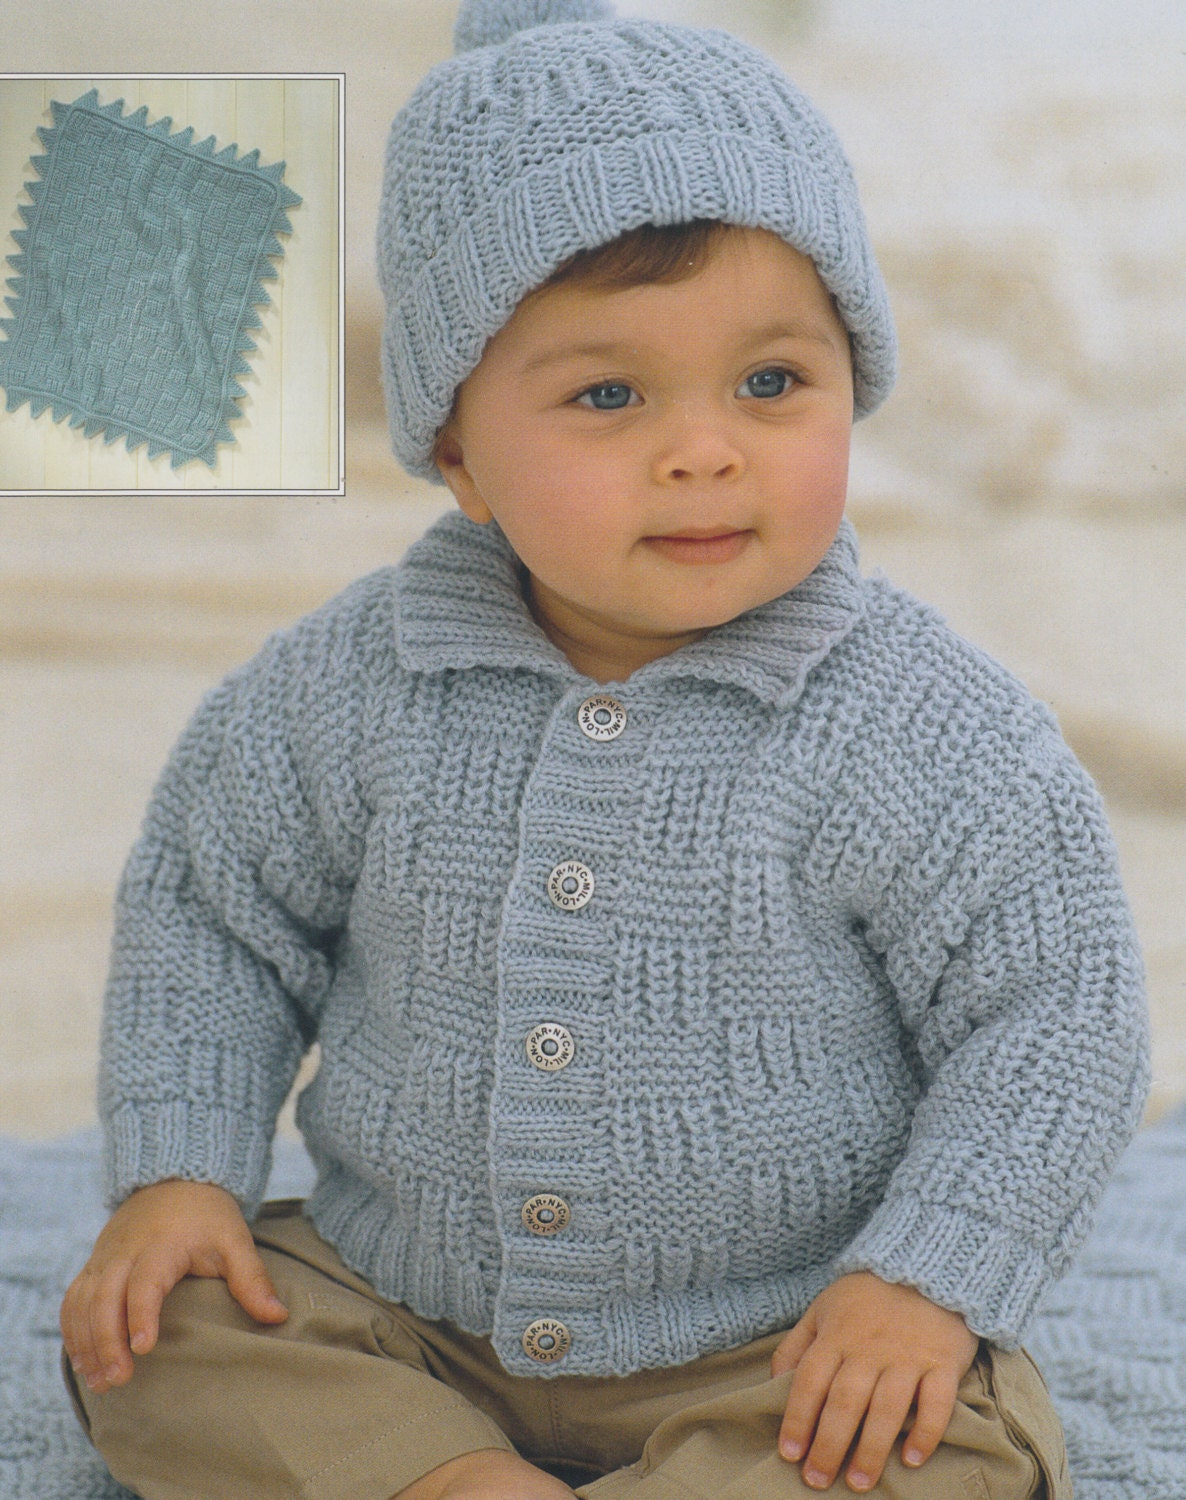 Knitting Pattern For Age : baby child knitting pattern cardigan pompom hat and blanket in